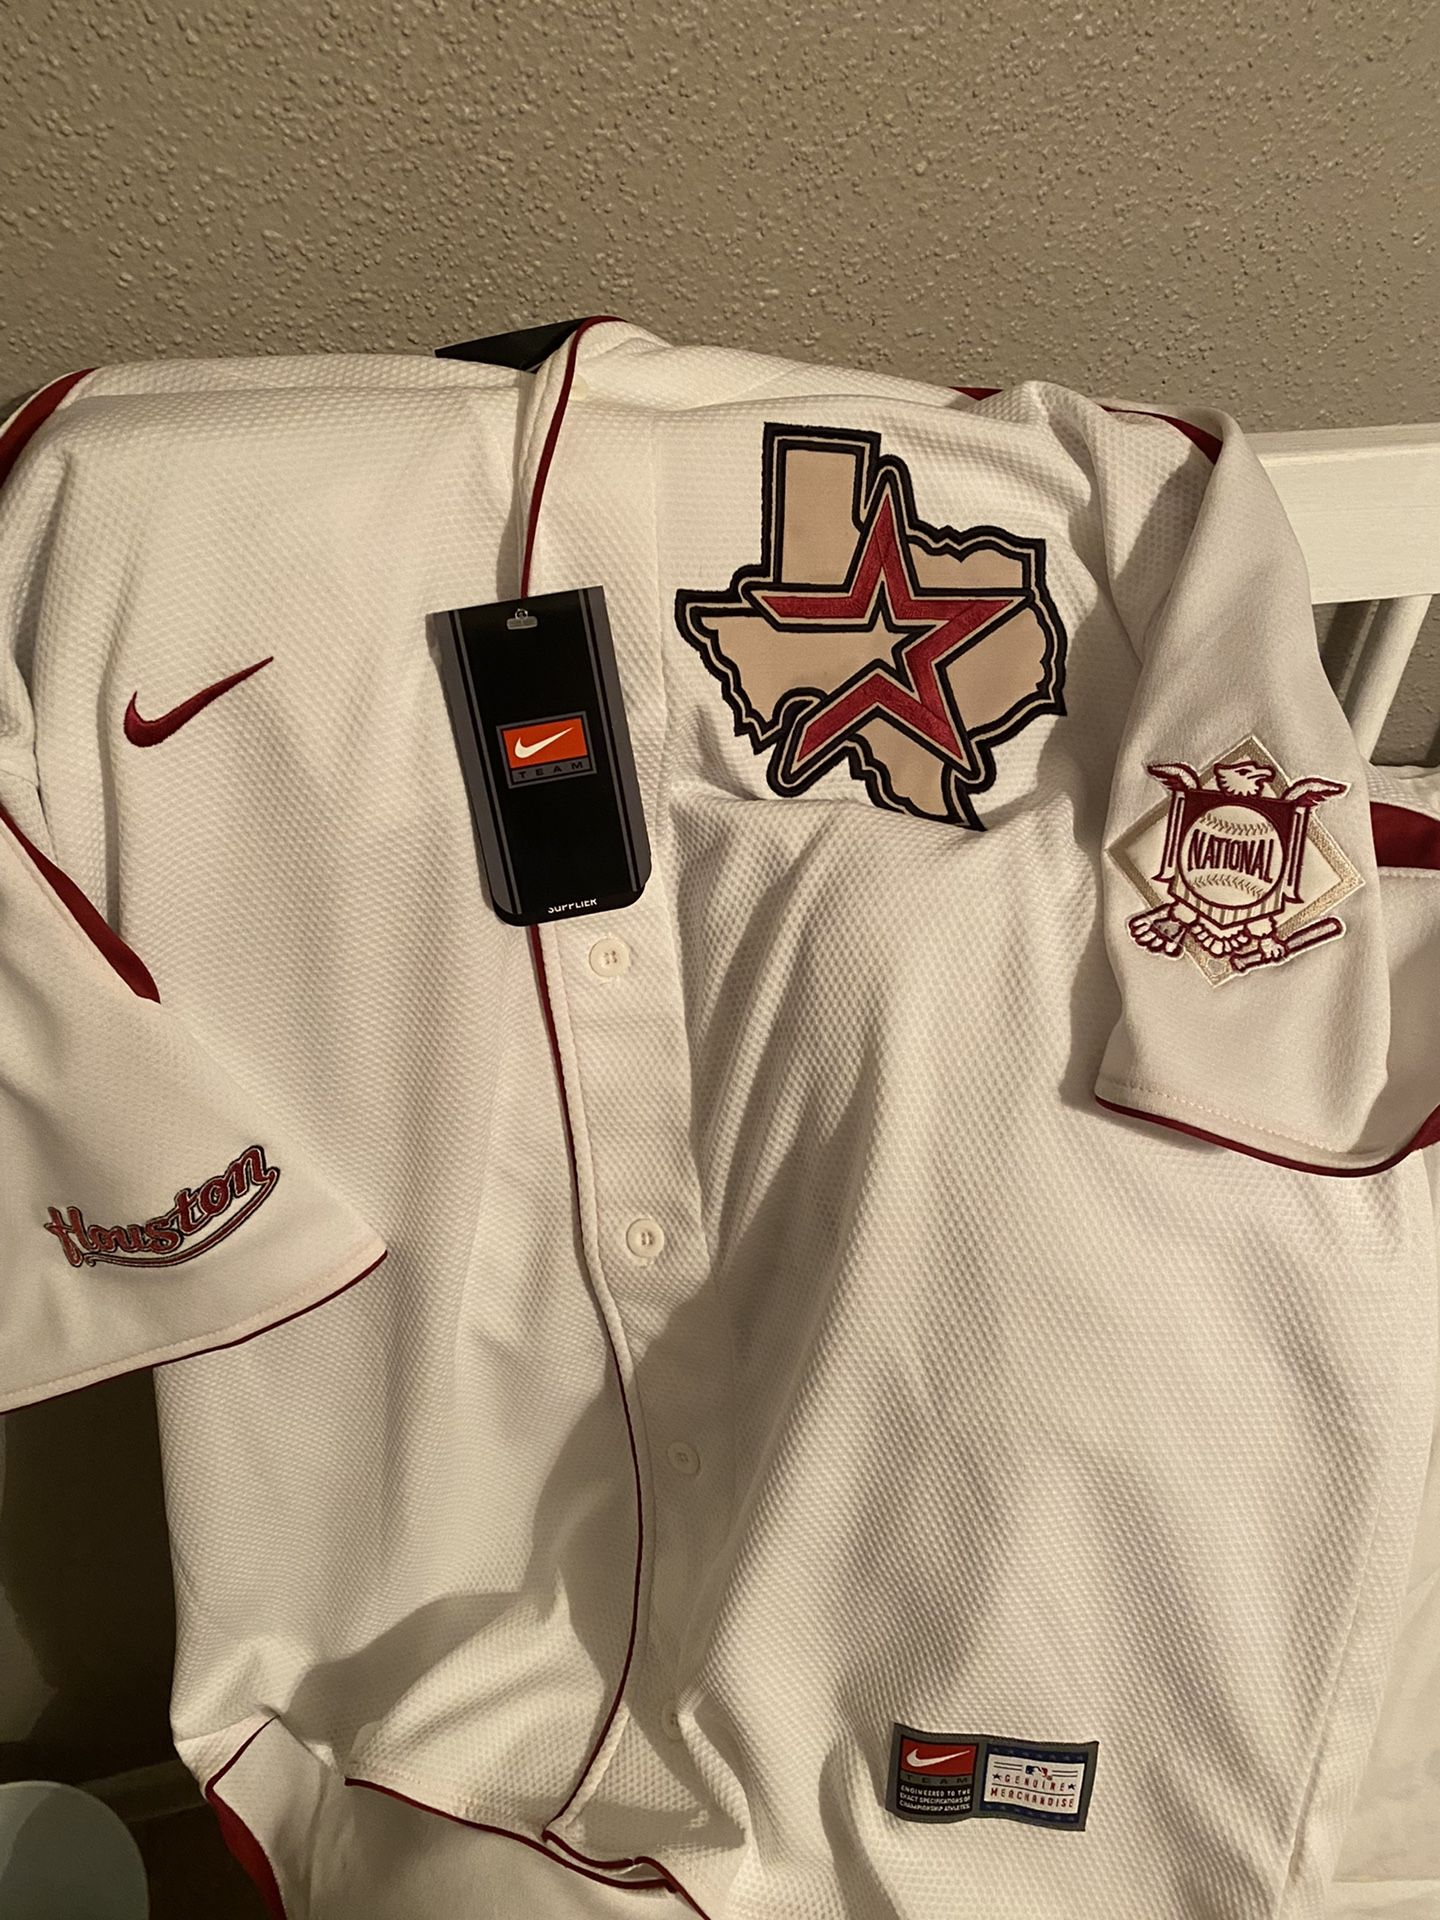 Roger Clemens Jersey And hat